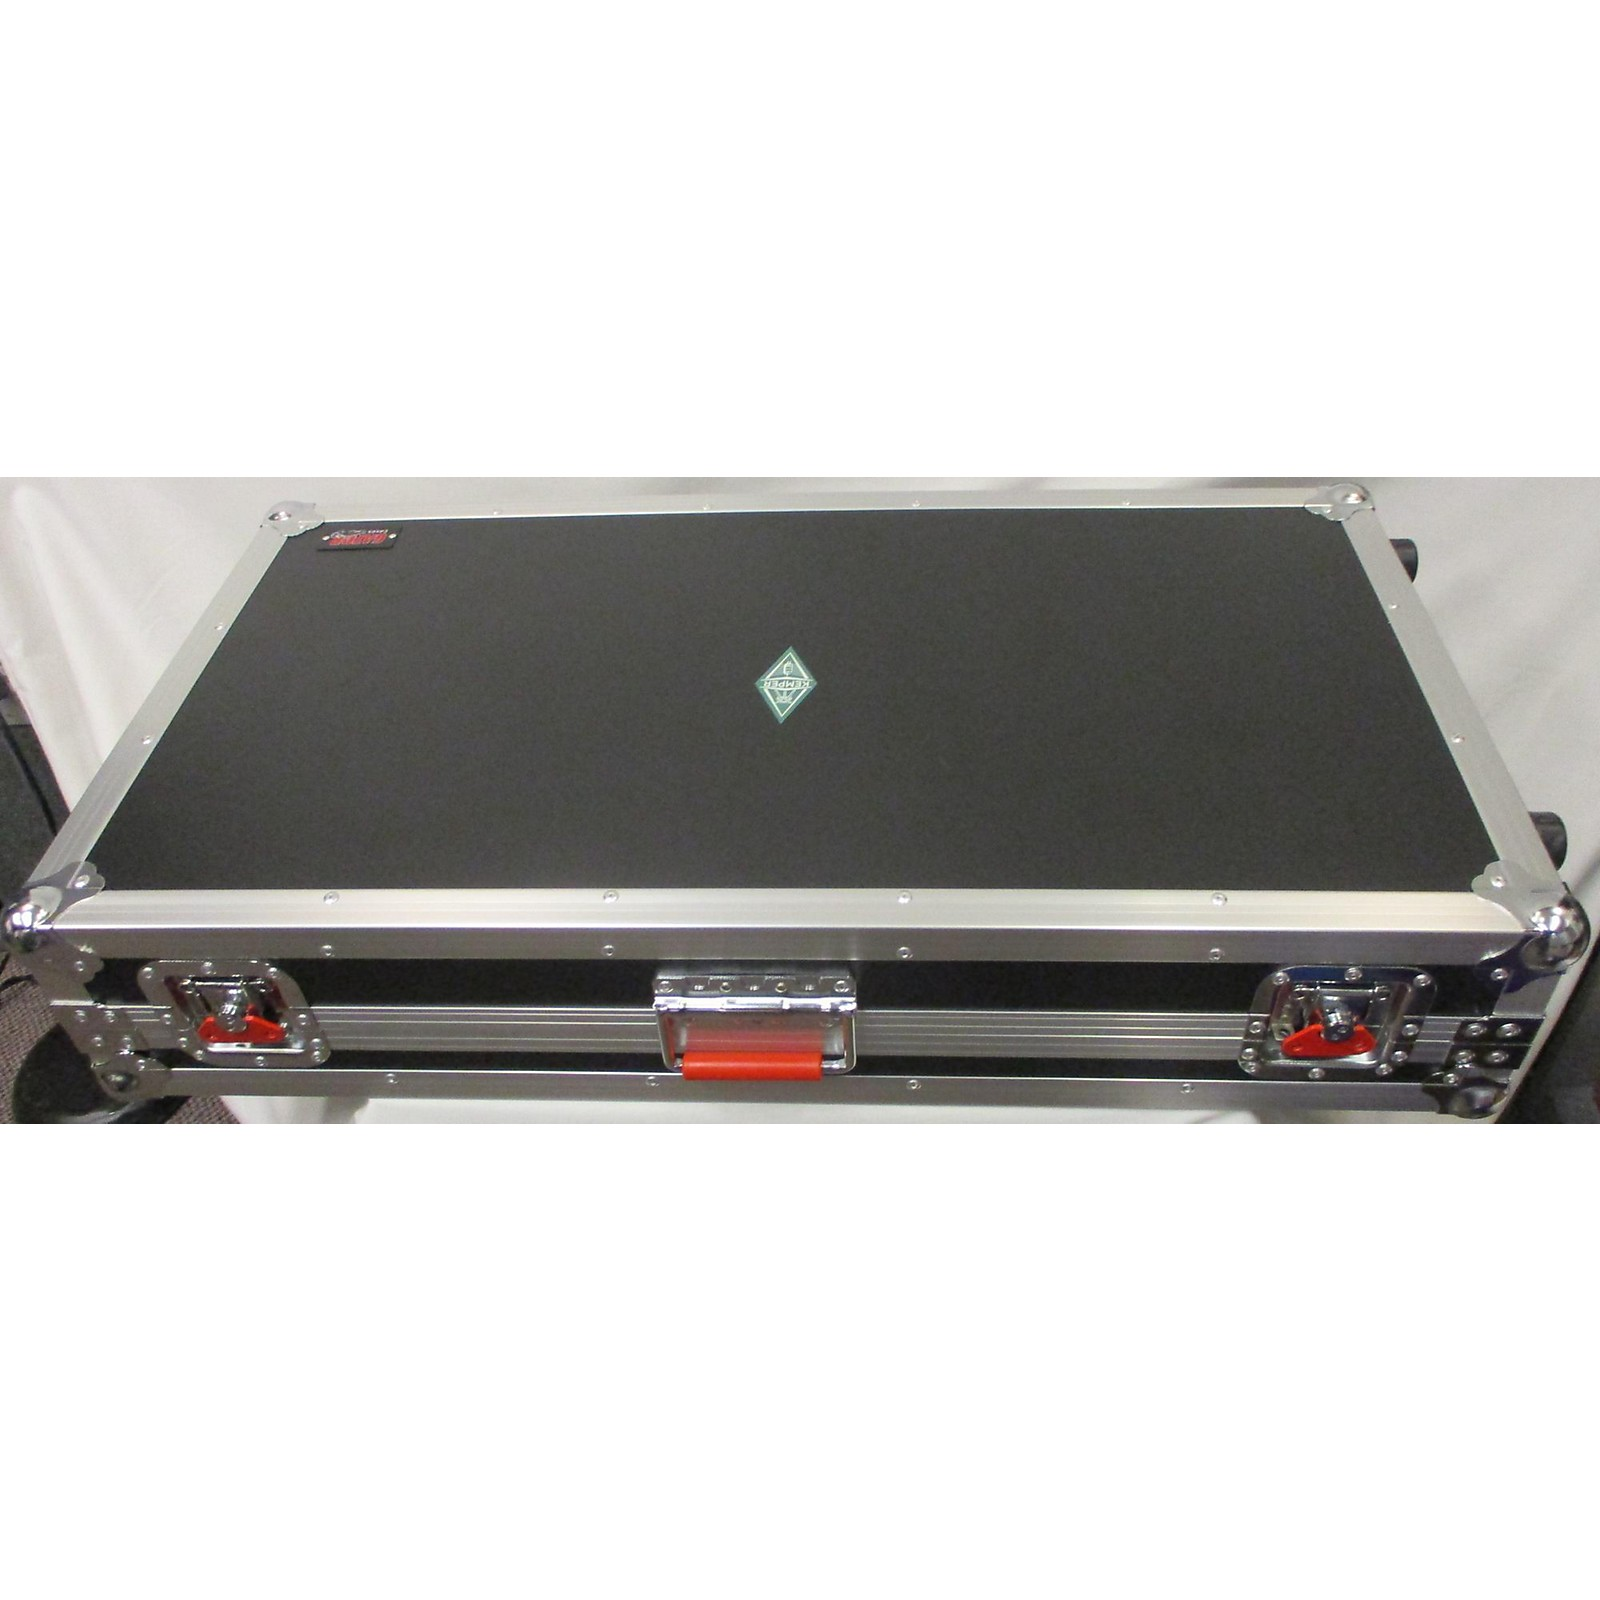 Gator Extra Large Pedal Board W/ Wheels Pedal Board